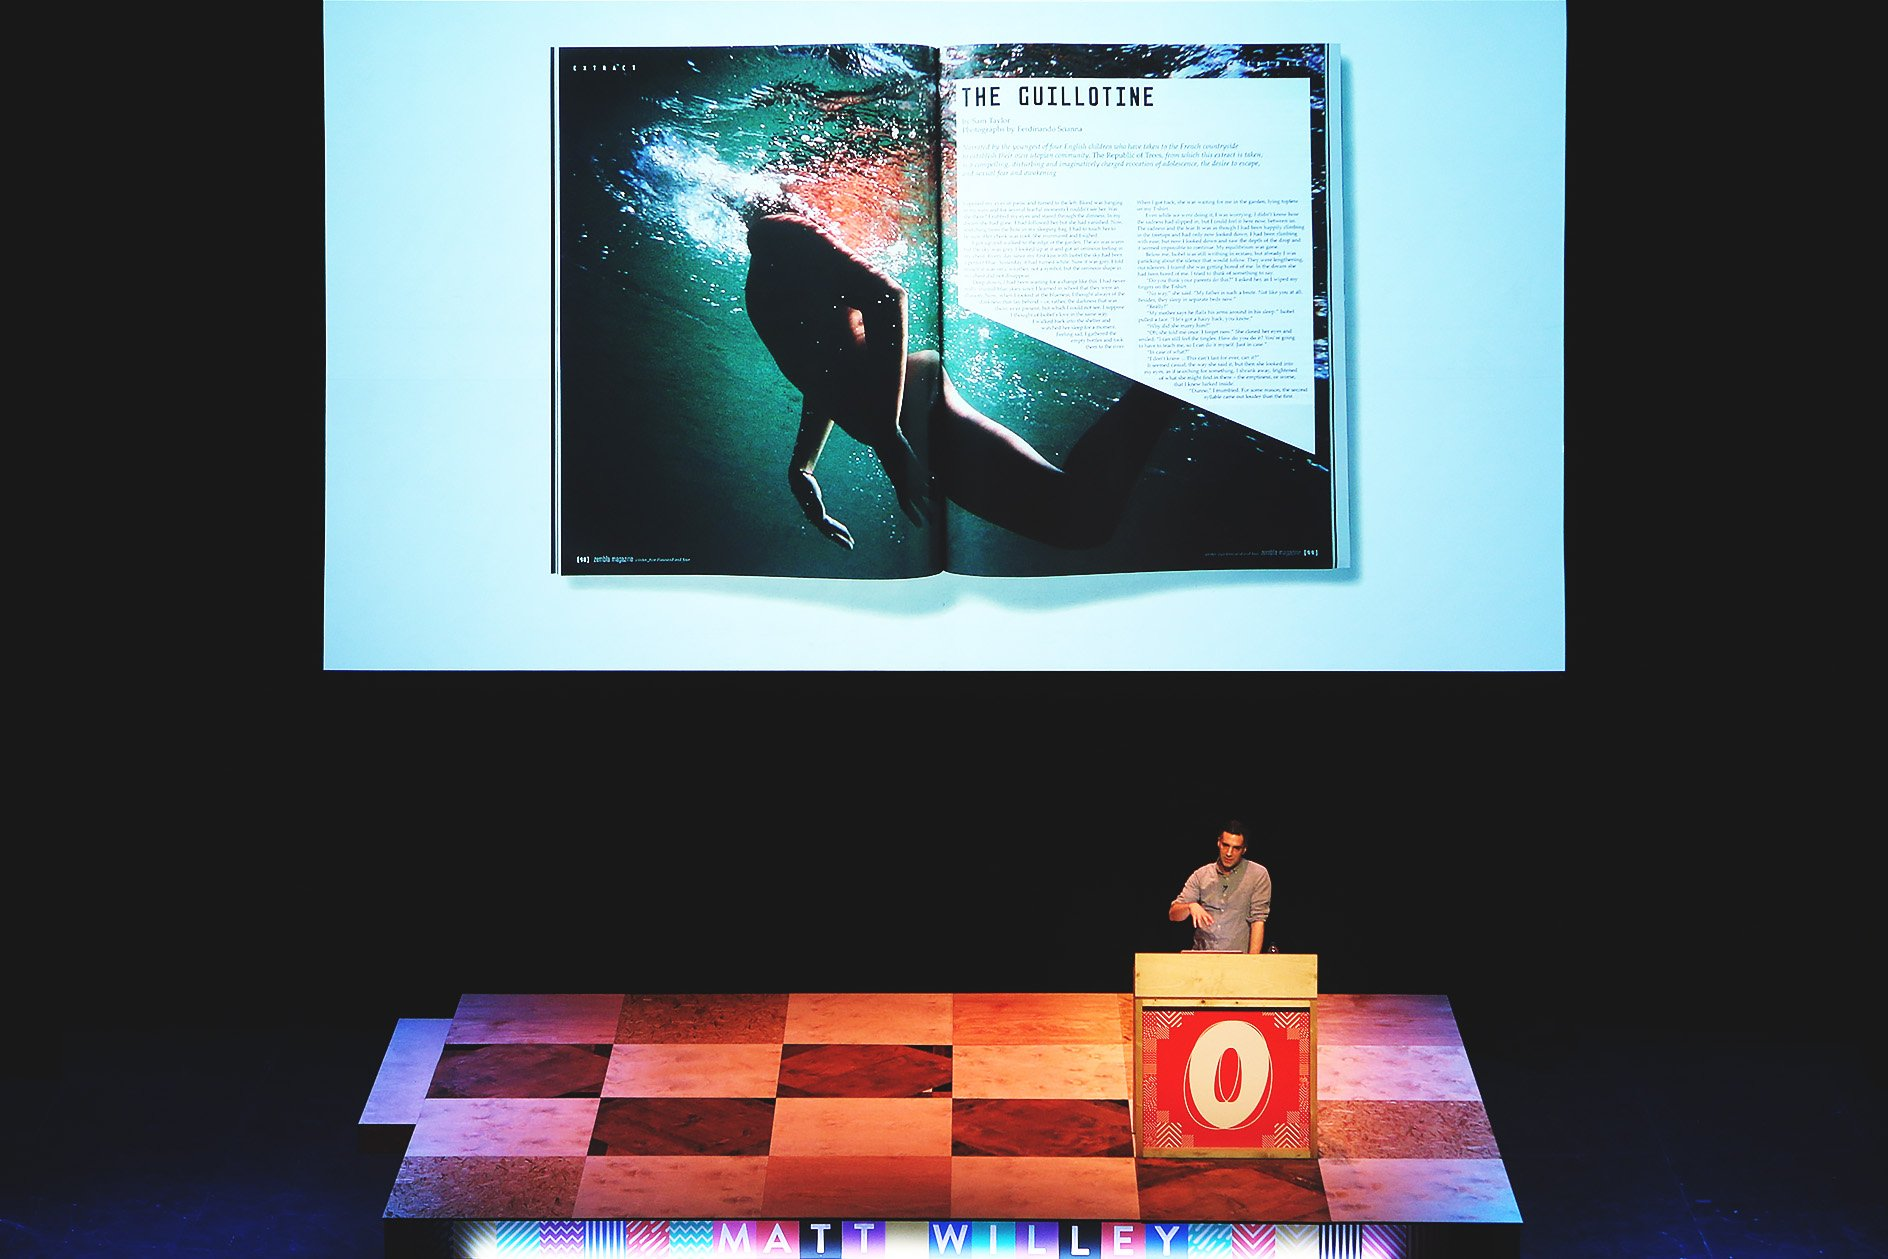 Matt Willey at OFFSET 2015 – Typographic layout according to content